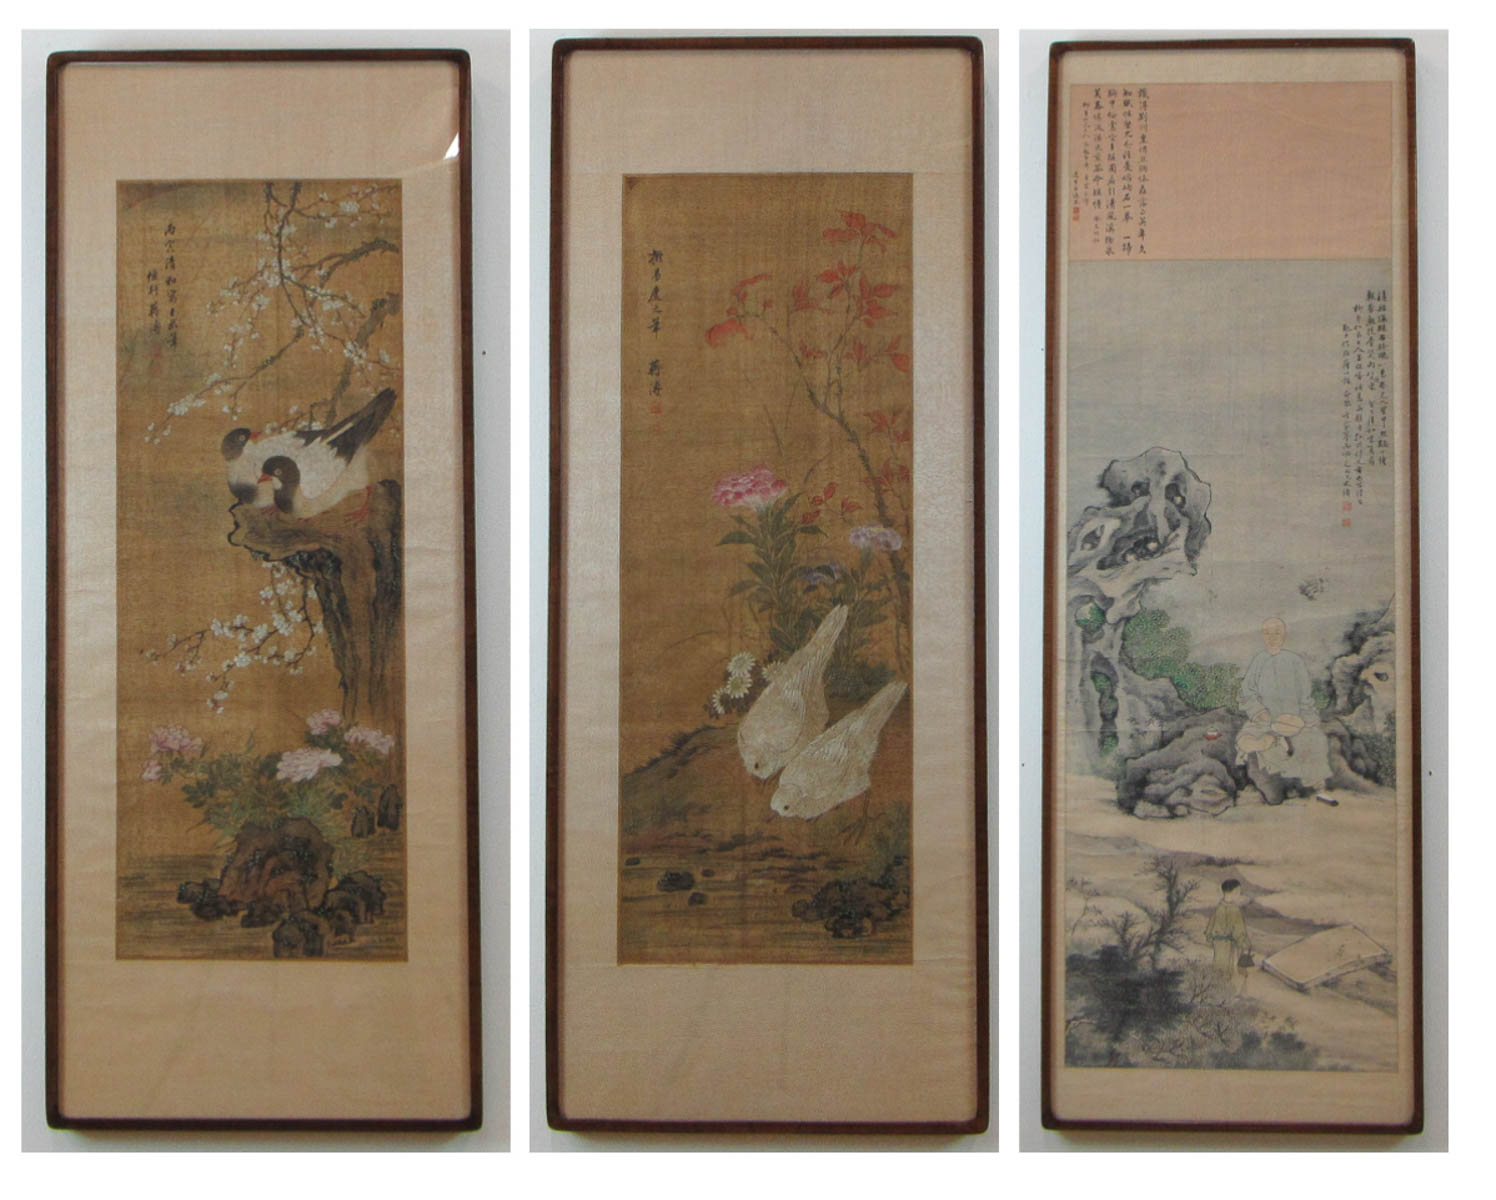 THREE CHINESE SCROLL PAINTINGS IN MATCHING FRAMES: